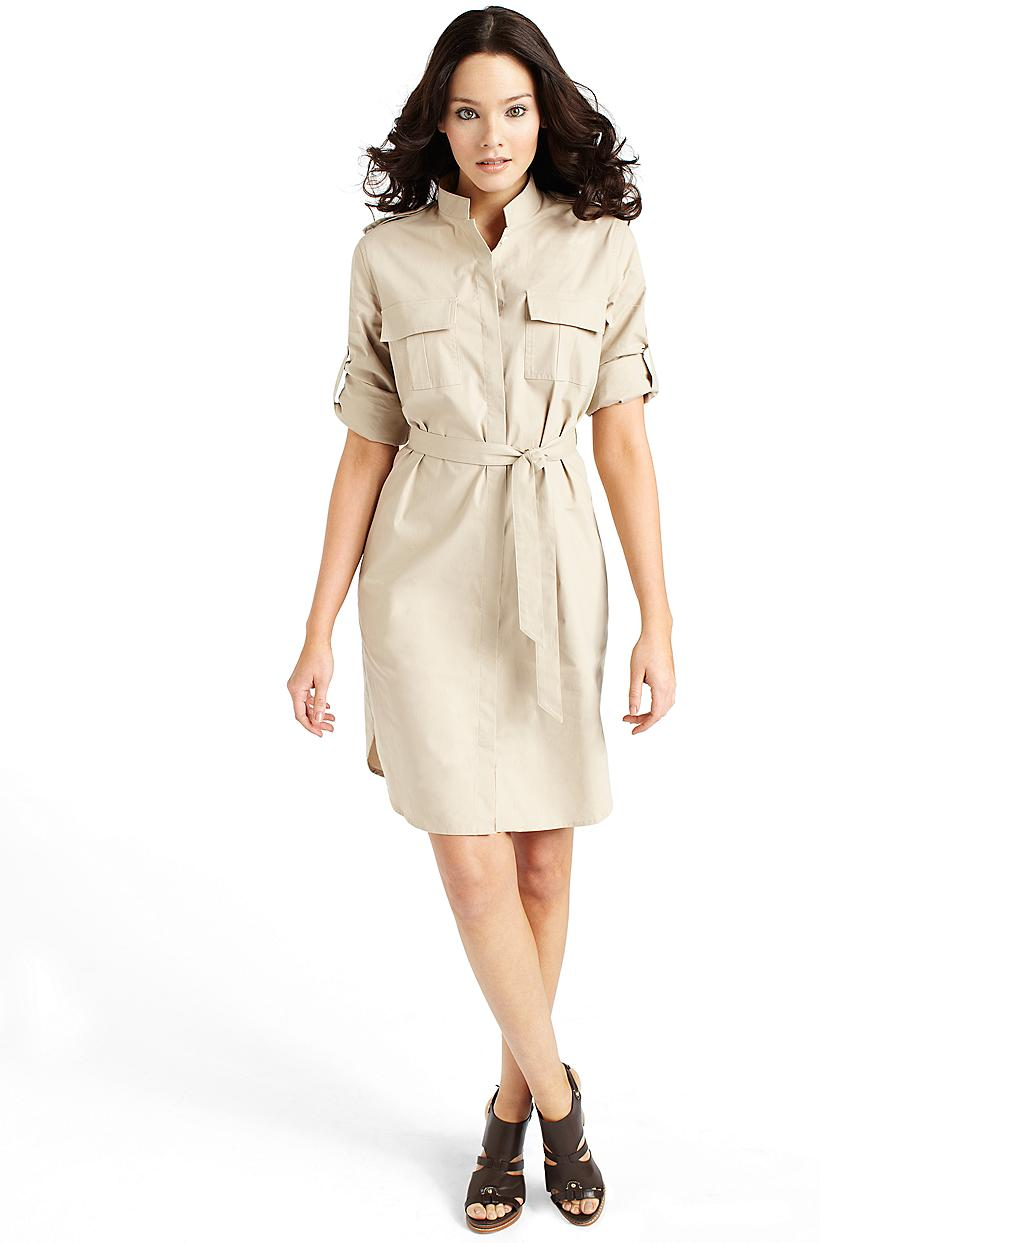 Shop a range of on-trend women's clothing & accessories at Cotton On. From jeans, dresses, tops, shoes and shorts. Free shipping on all orders over $